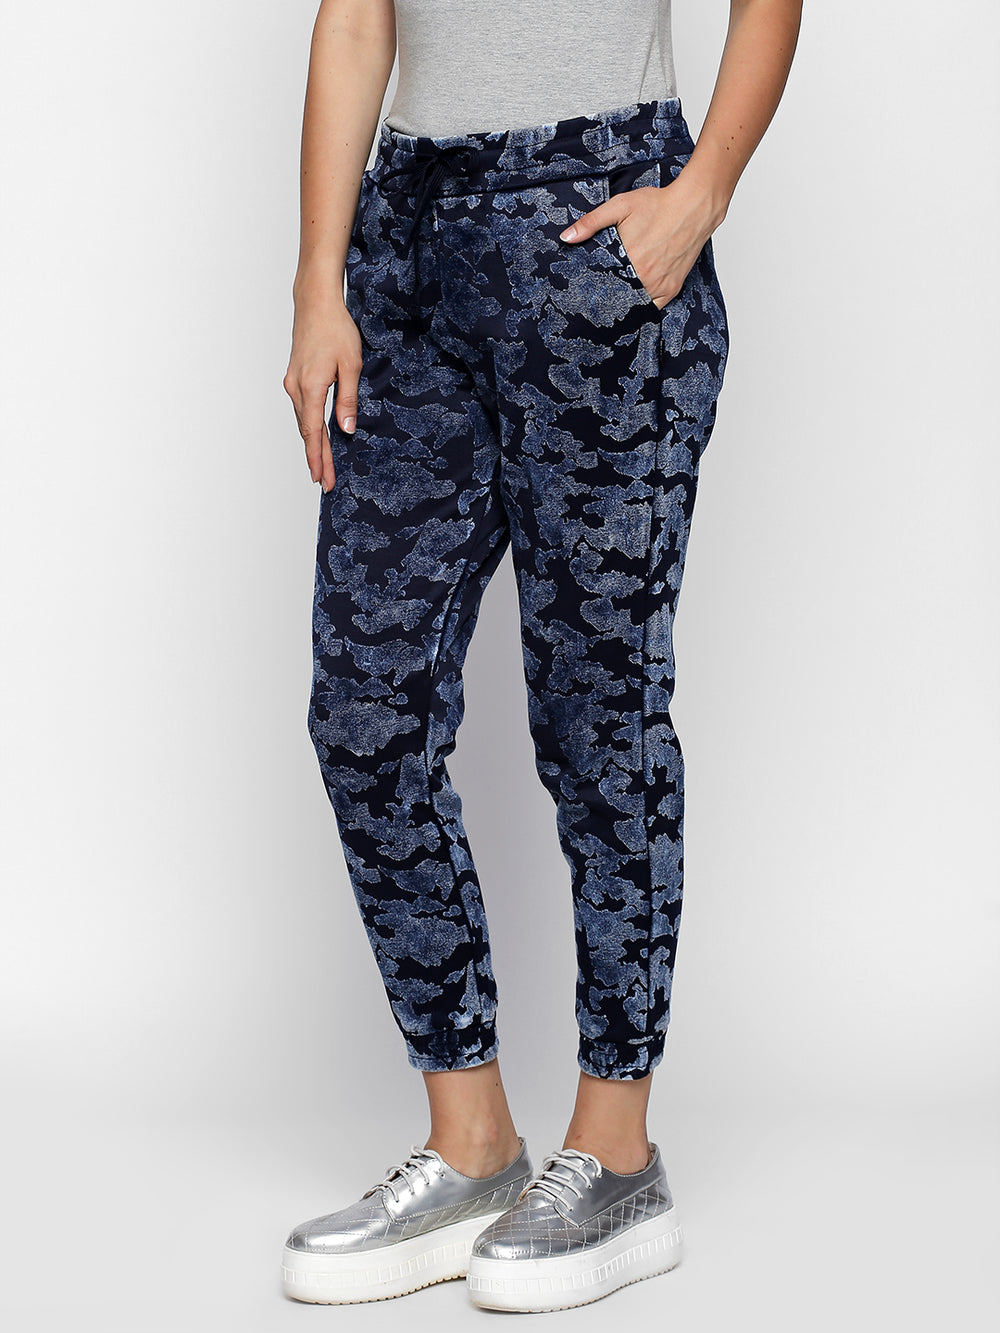 Navy Blue Camouflage Print Cotton Joggers